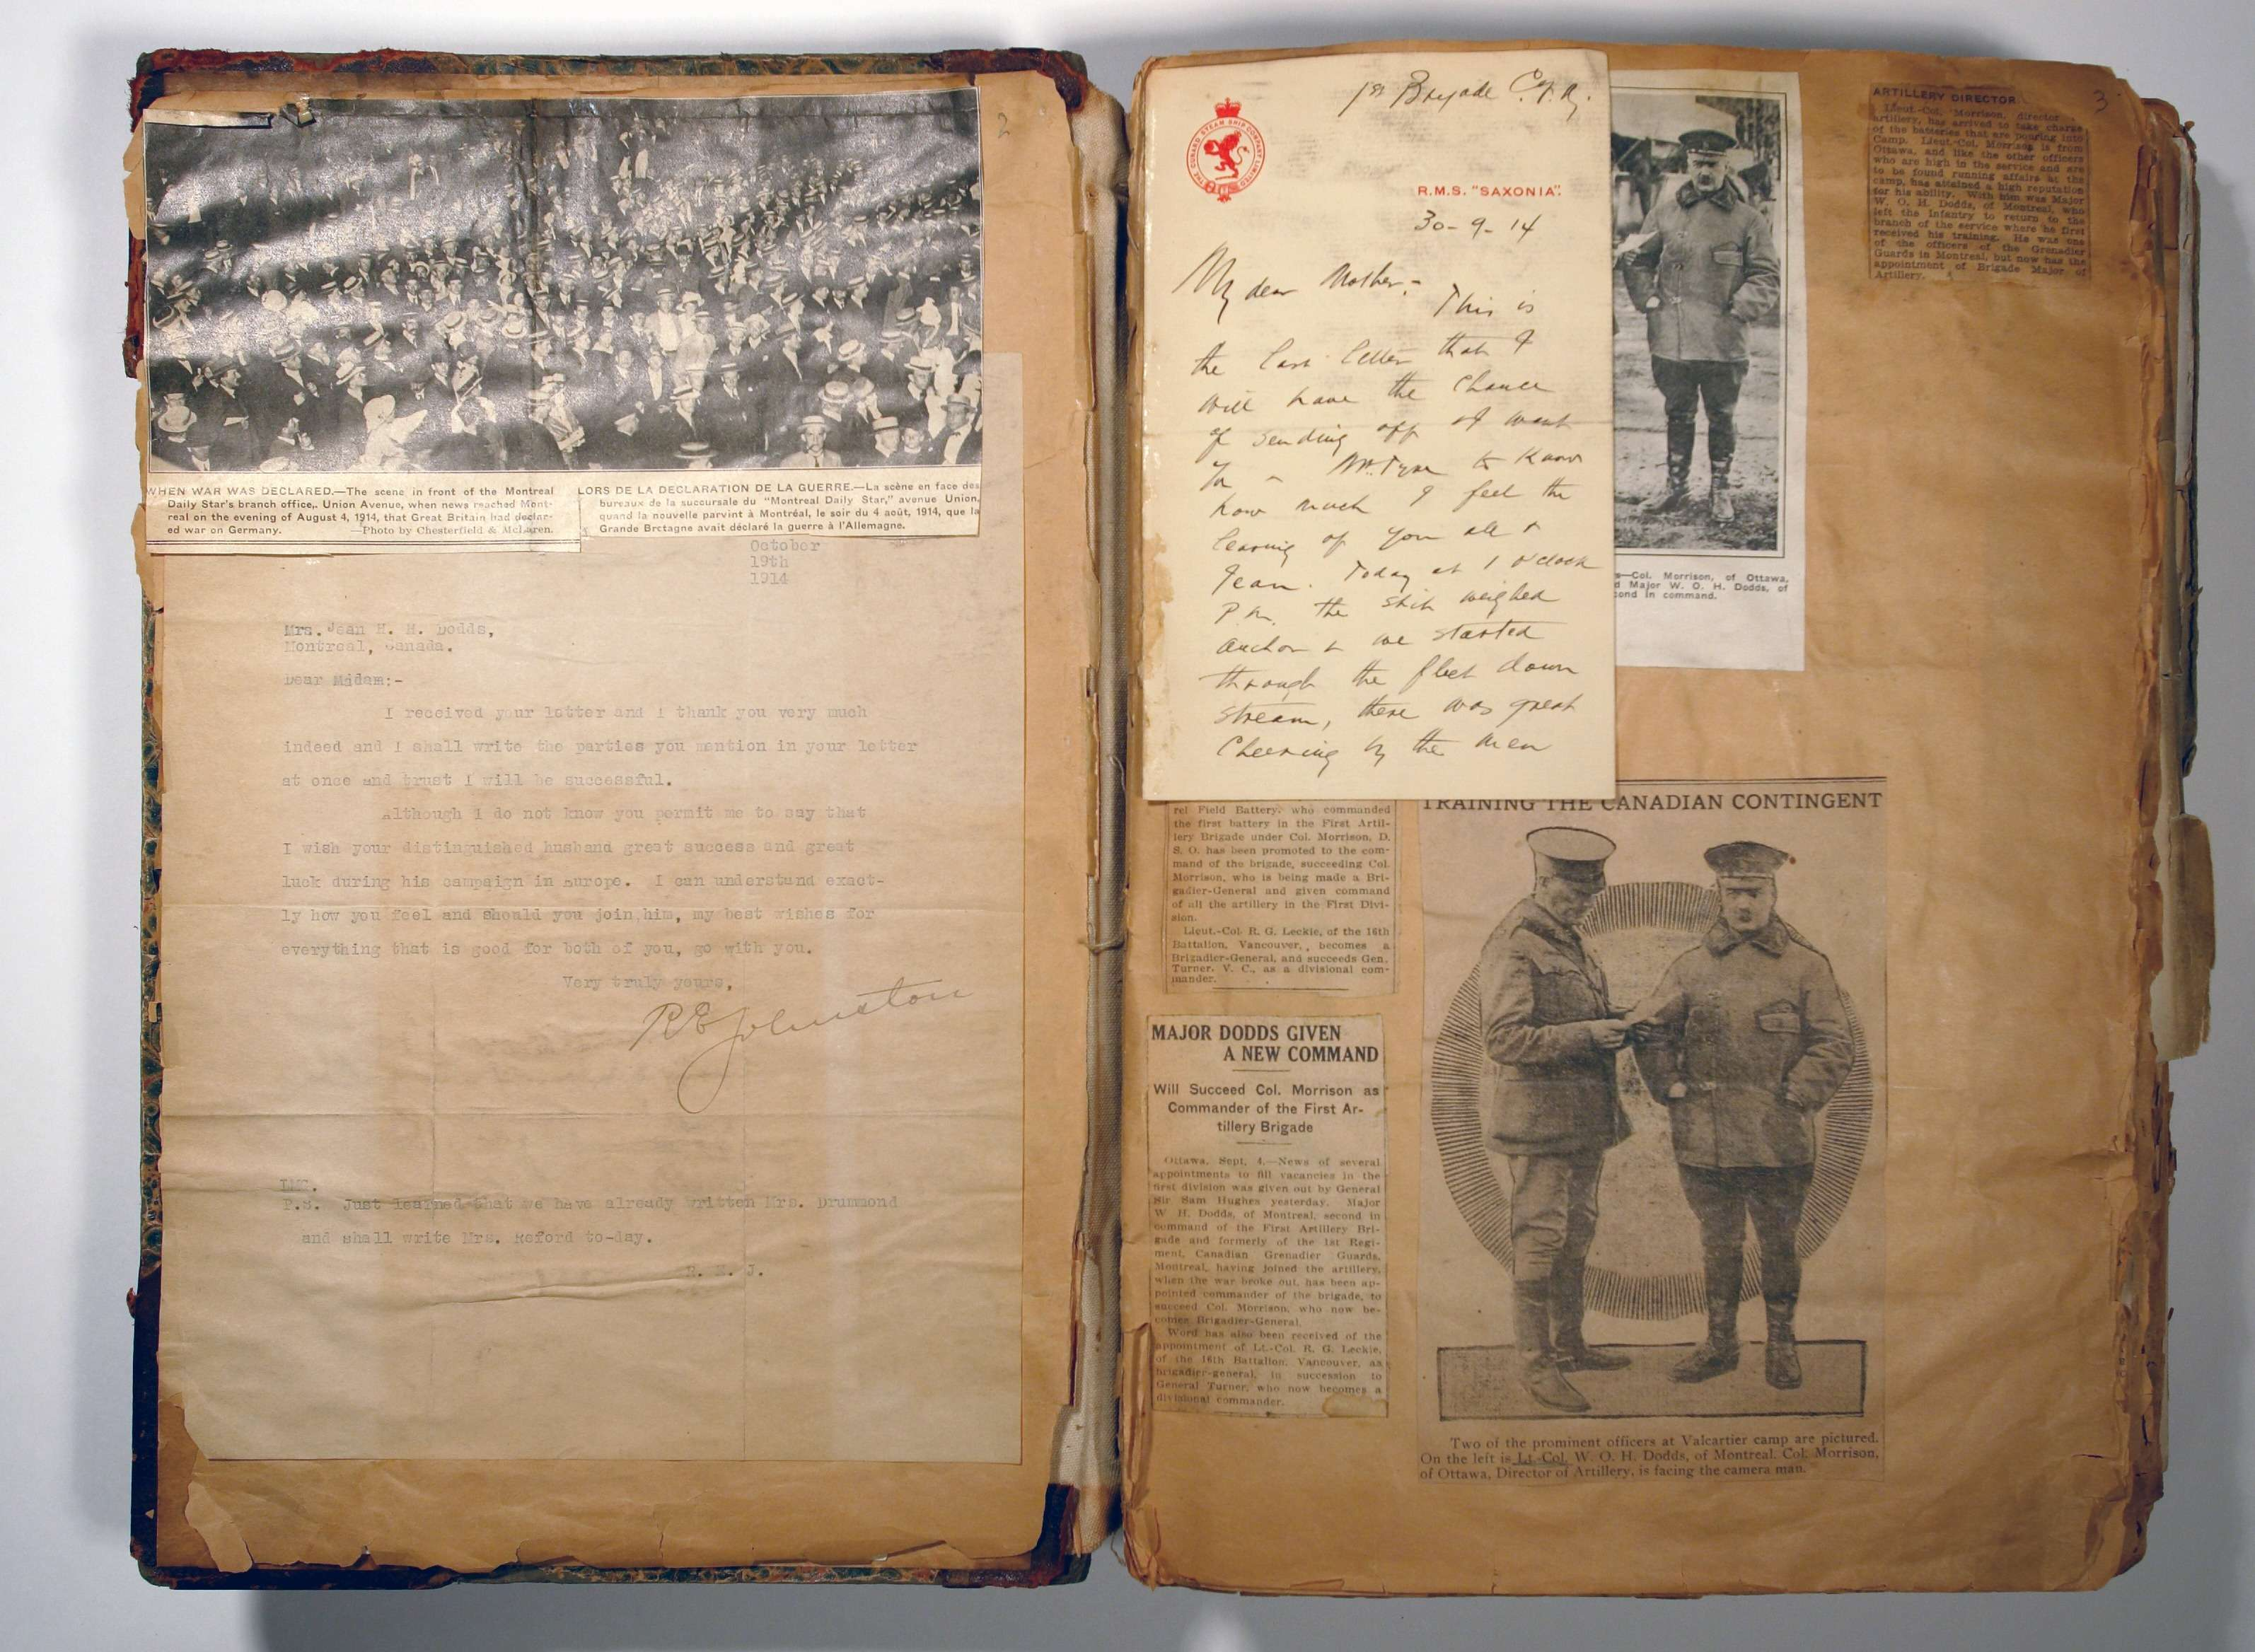 How to scrapbook newspaper clippings - Download Page